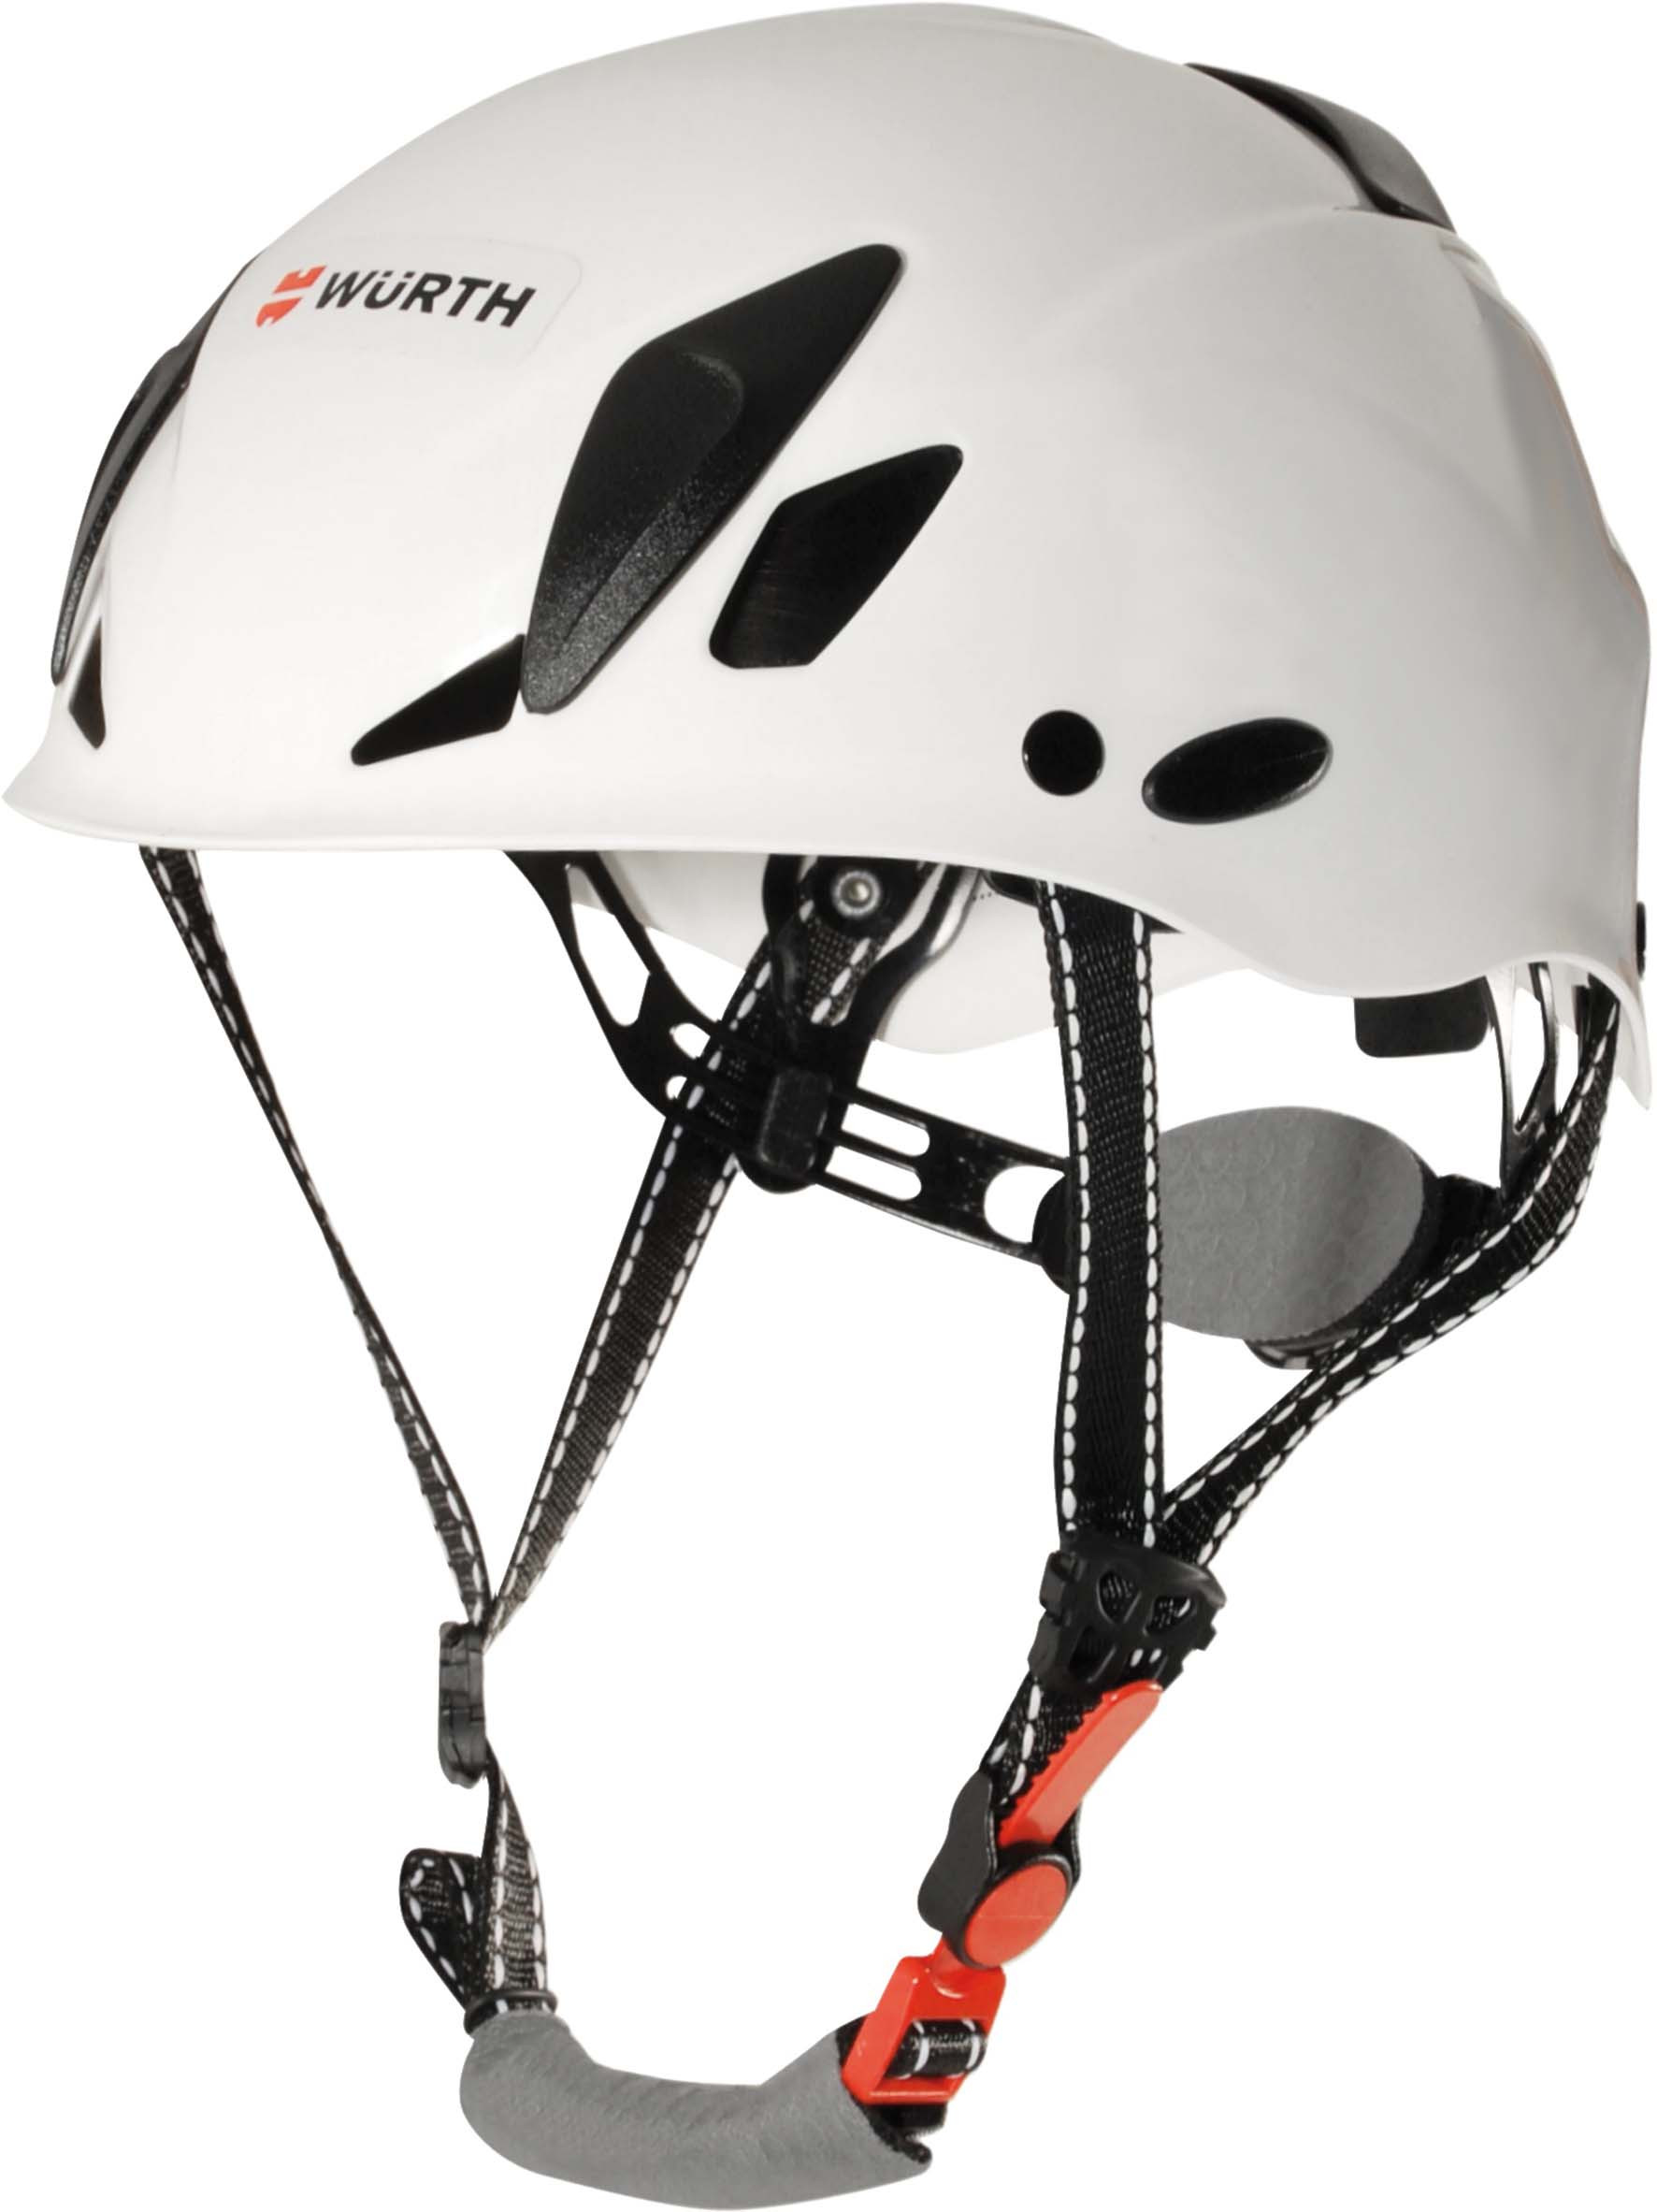 CASCO WÜRTH CON BARBOQUEJO EN397 BLANCO